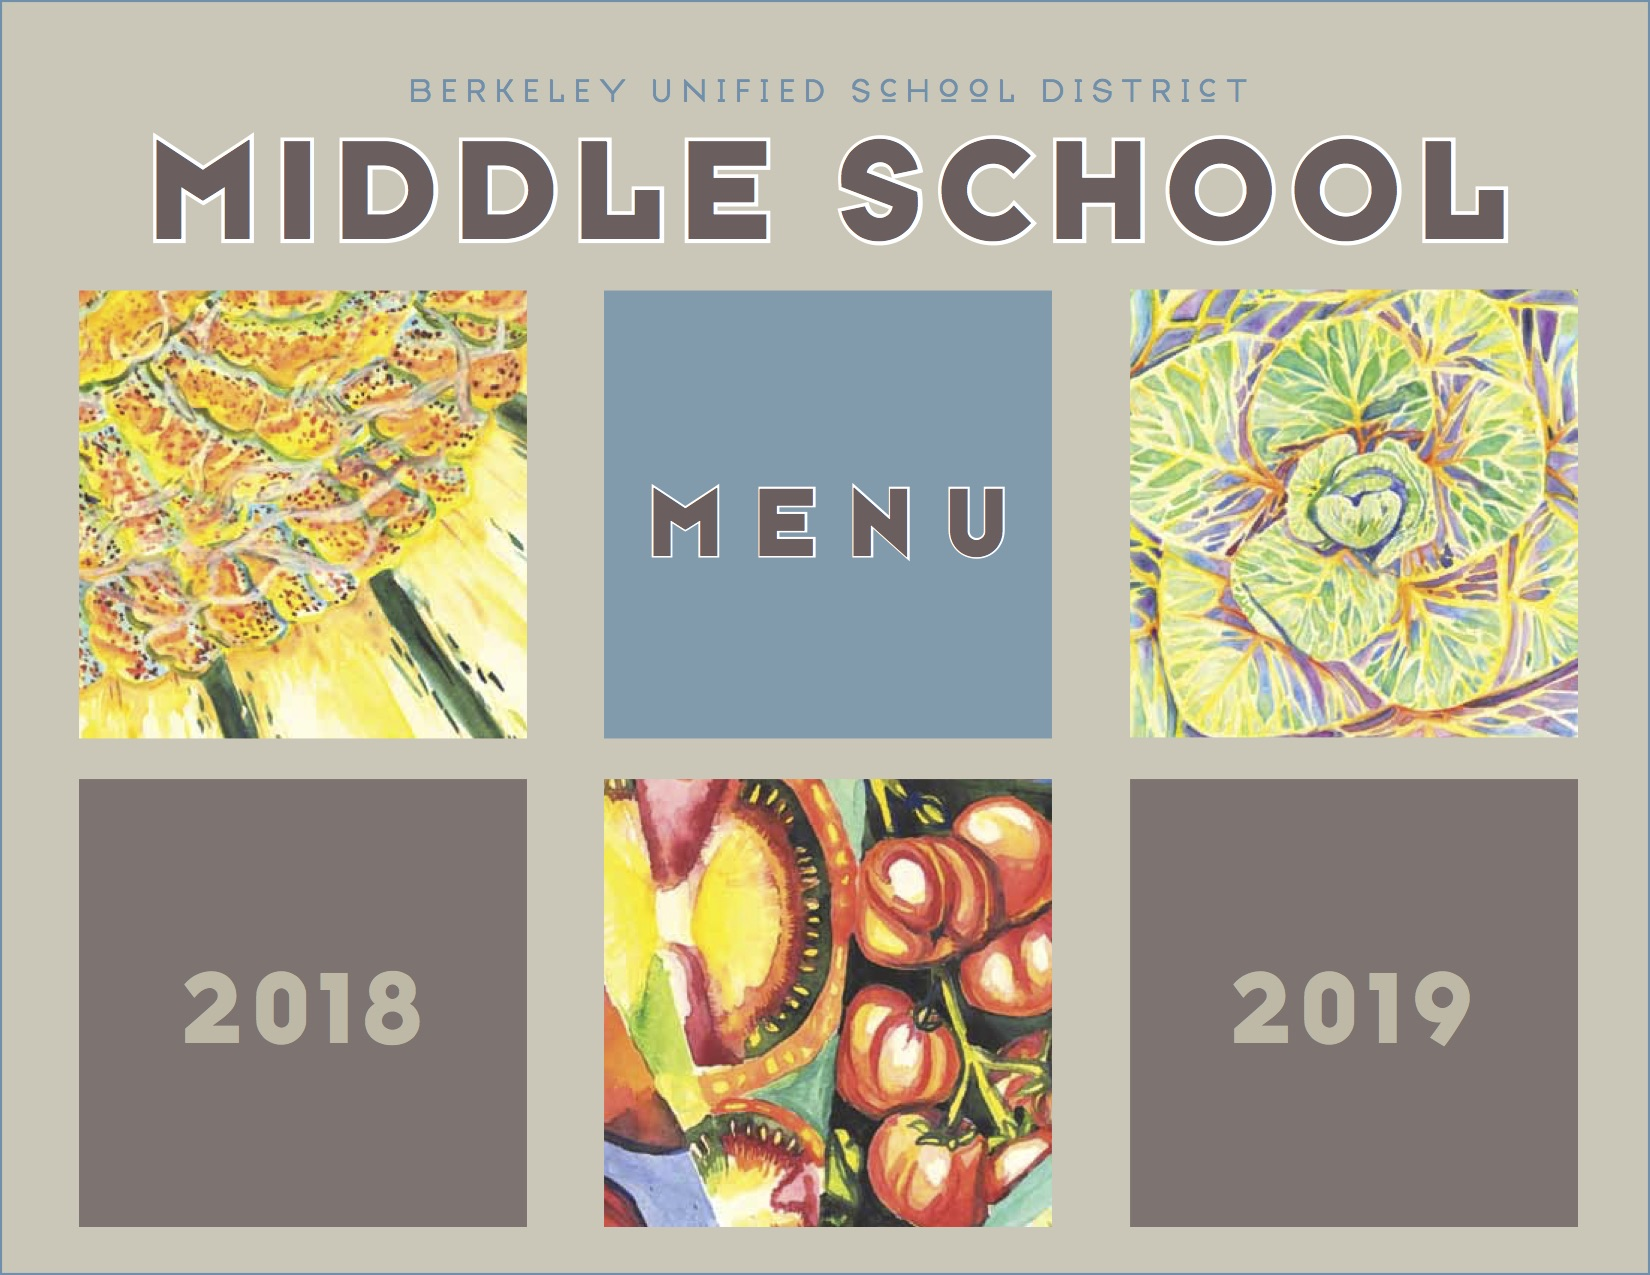 Middle School Lunch Menu